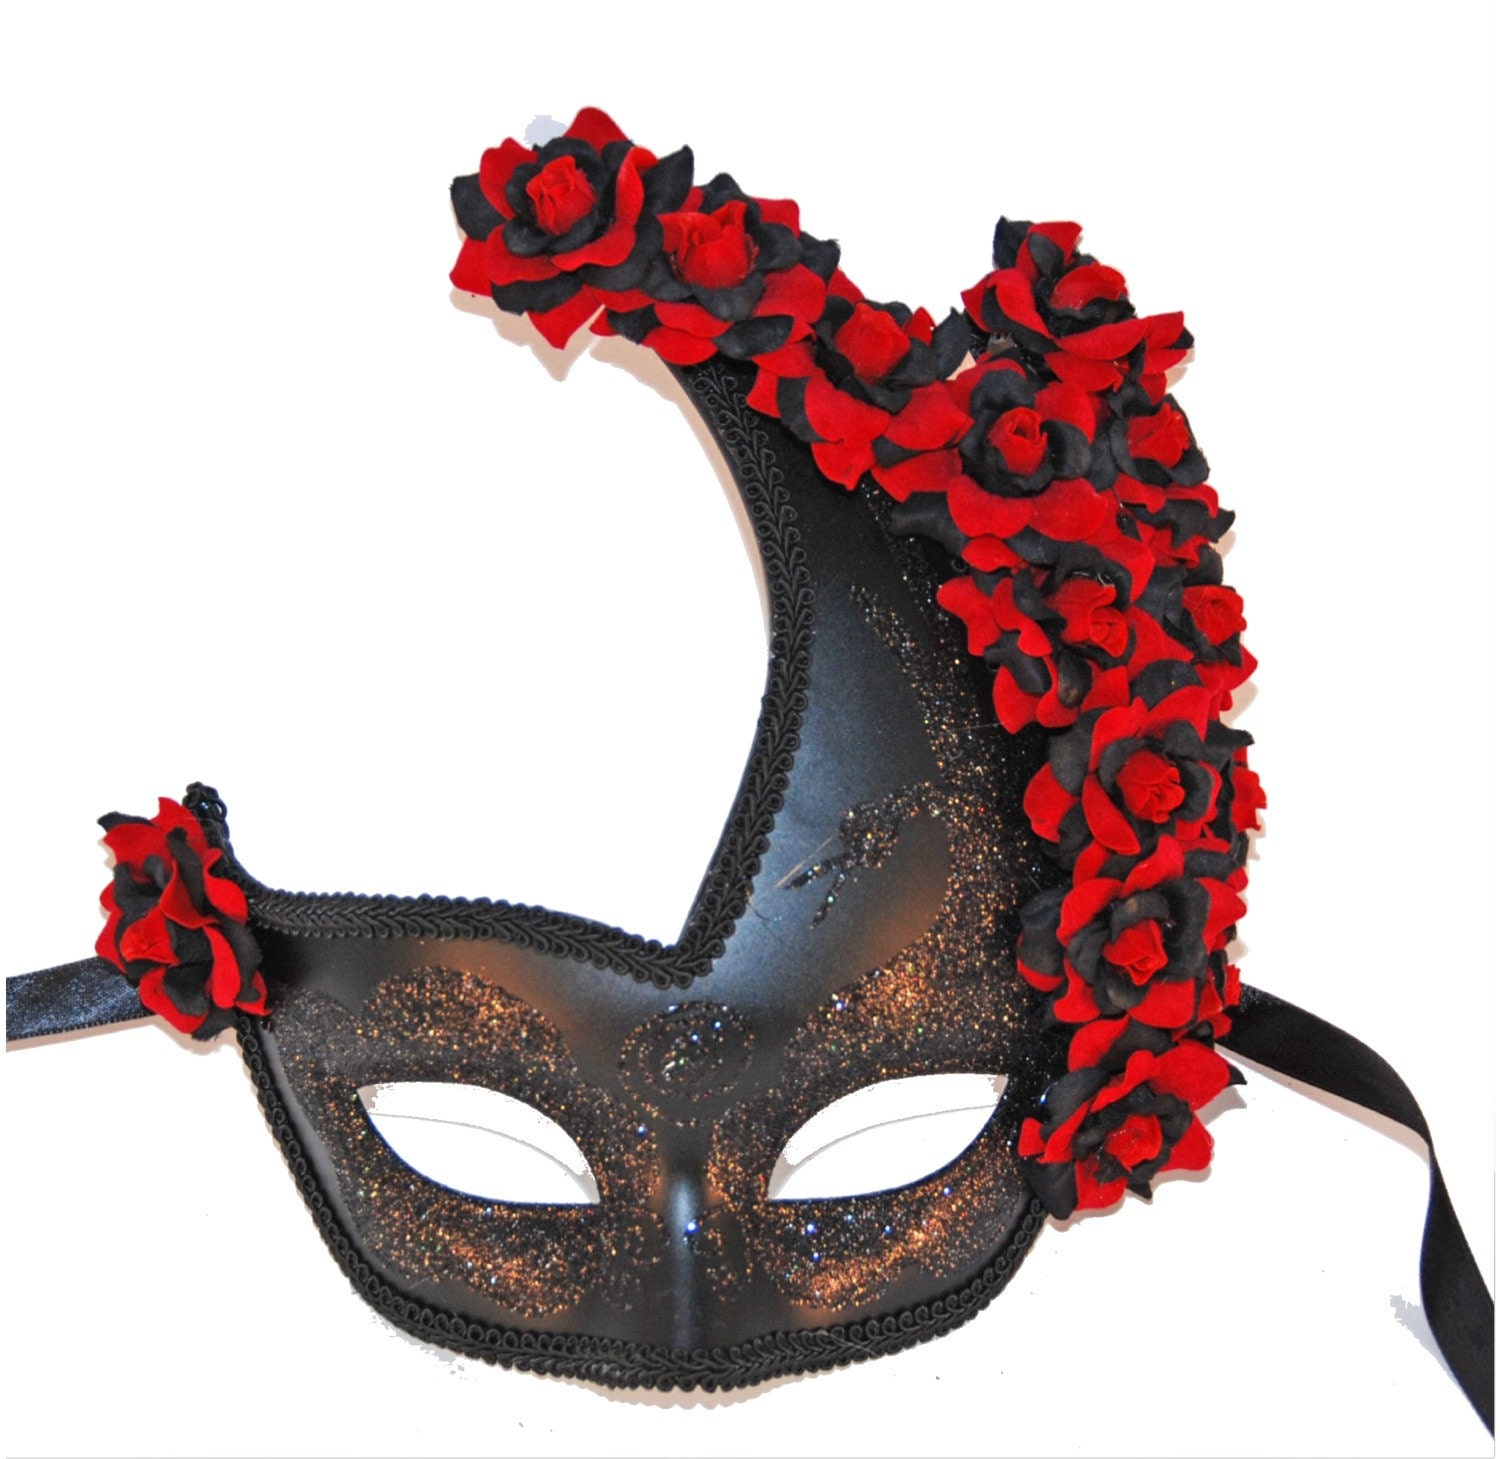 Black Masquerade Mask with Red and Black Roses Costume Ball